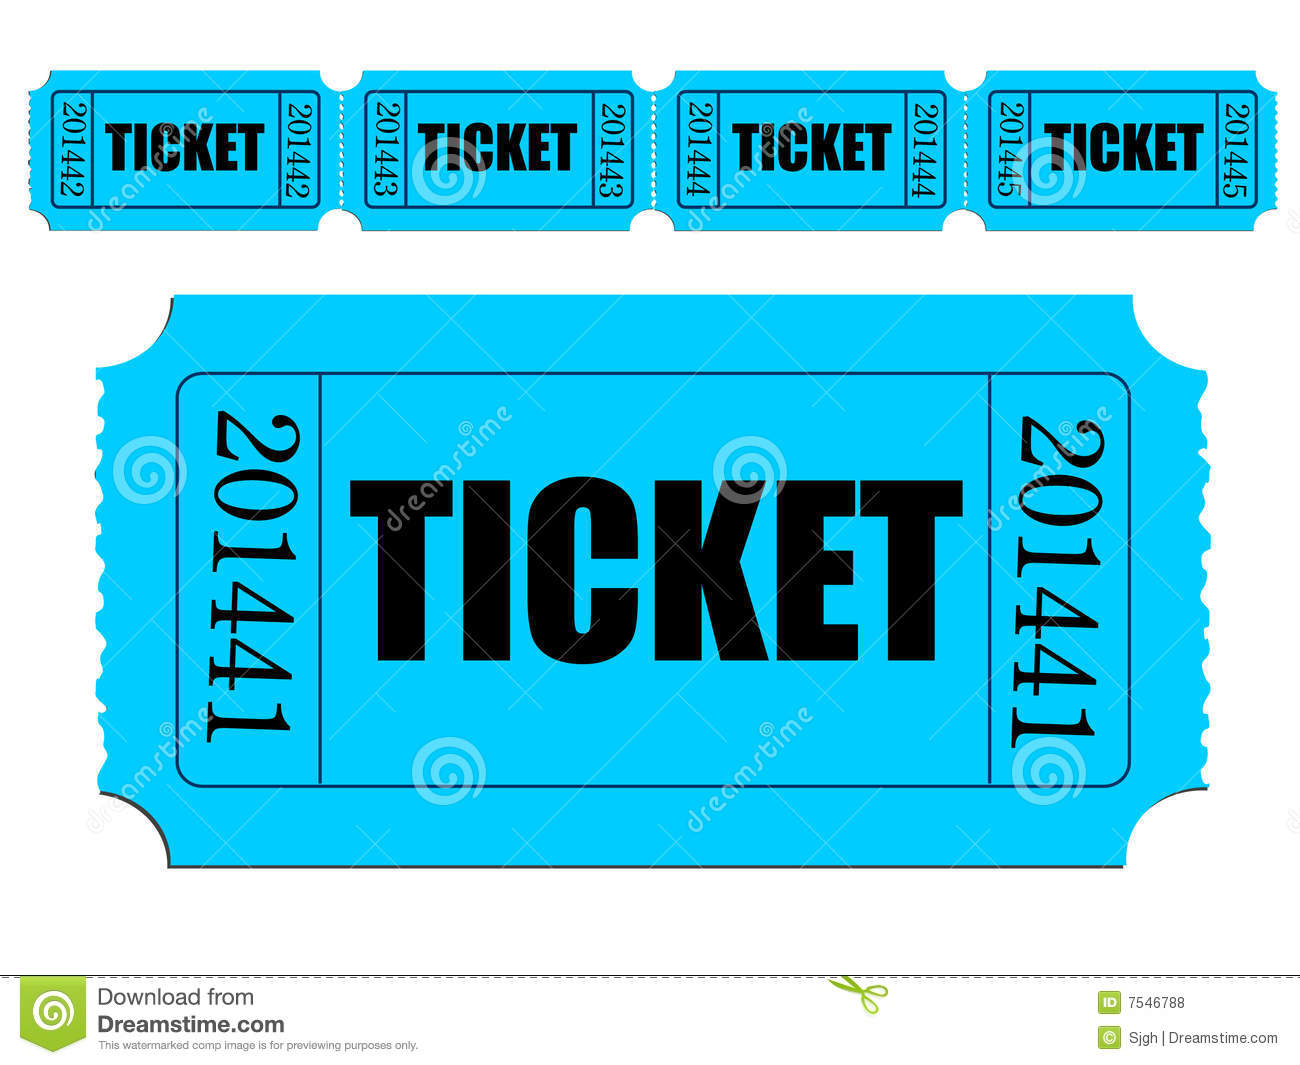 Single Raffle Tickets Image of single ticket and